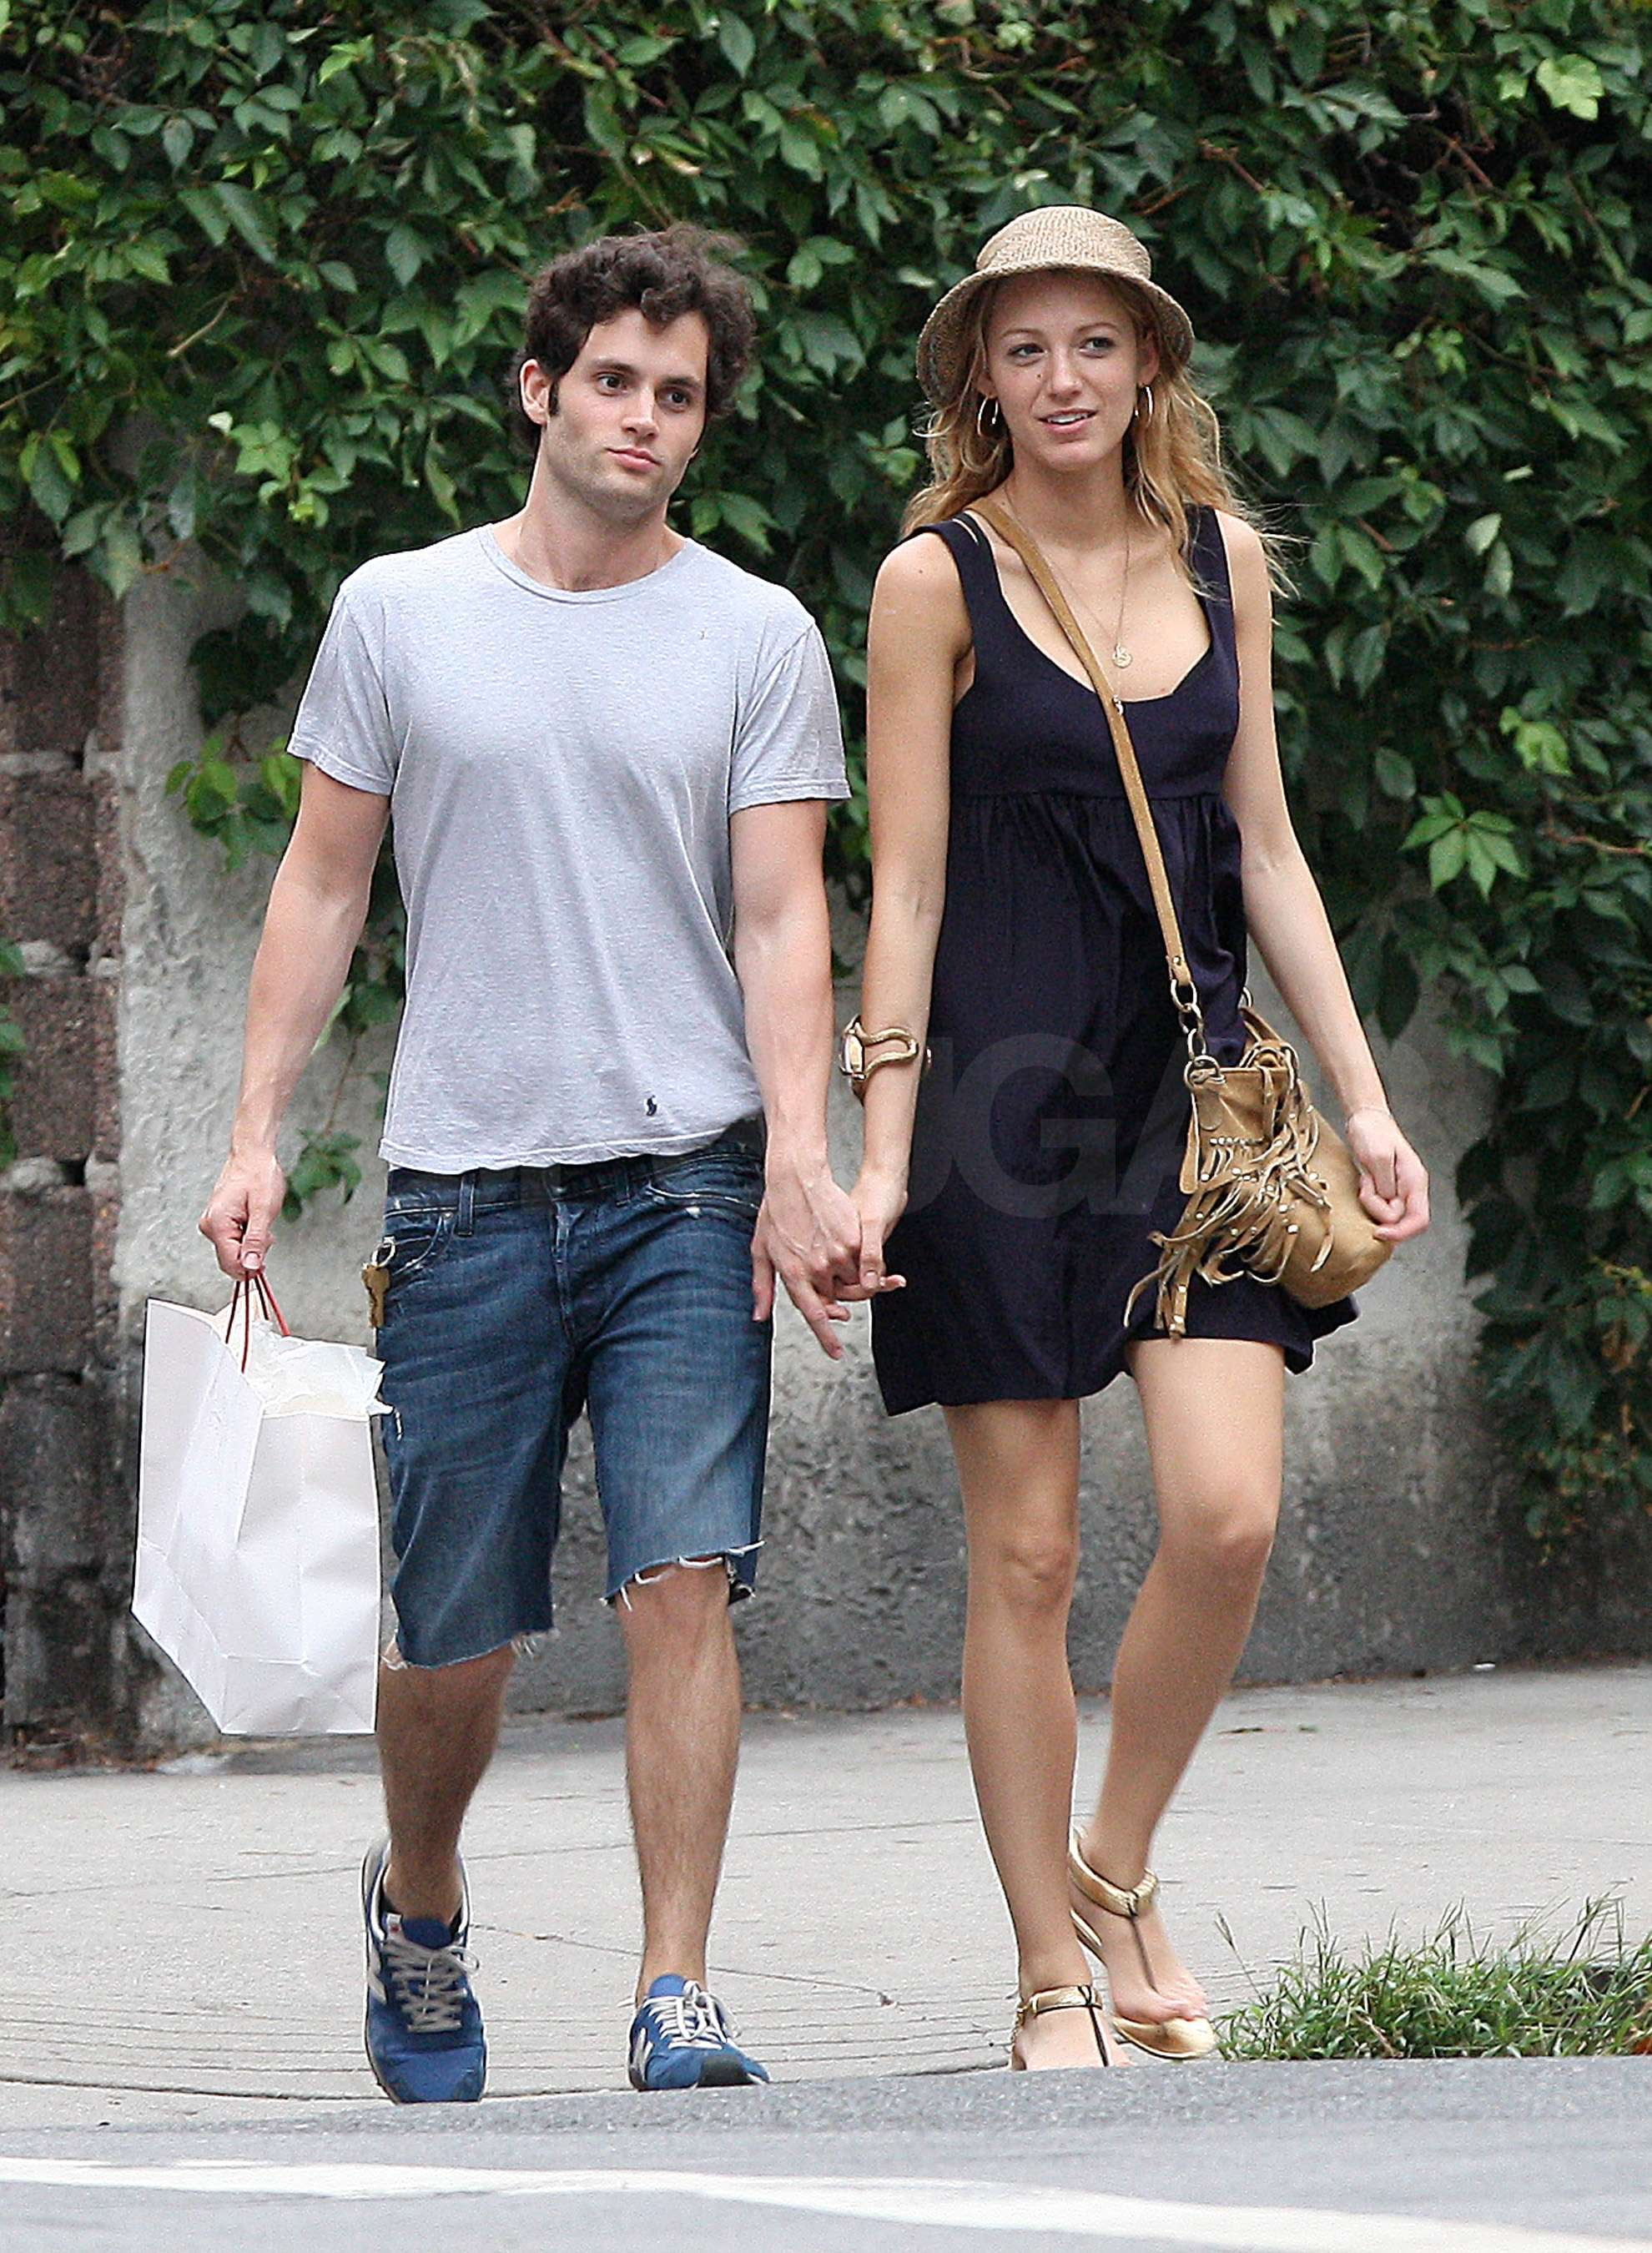 Pictures of Blake Lively and Penn Badgley Making Out in ... Blake Lively Movies